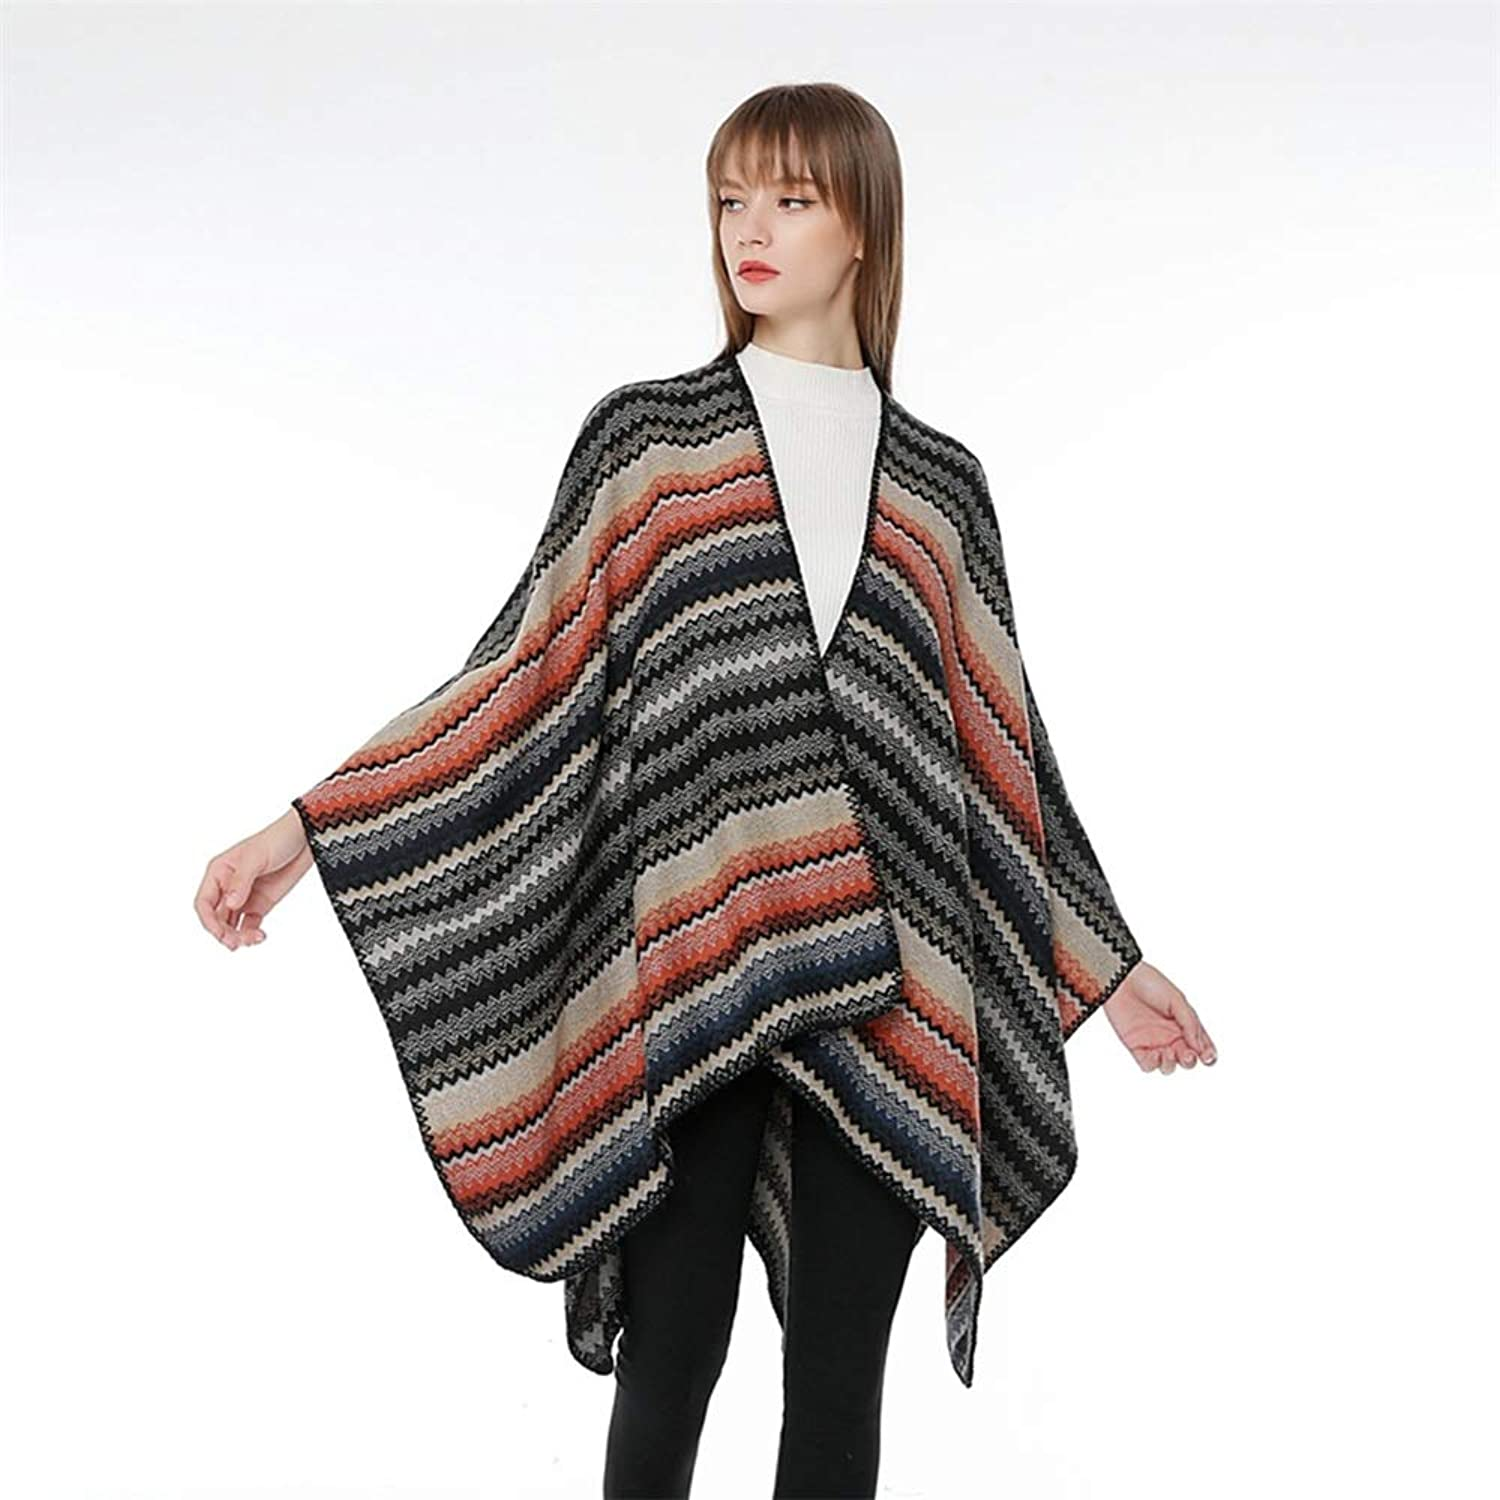 Womens Cape Poncho Coat Ladies Womens Knitting Keep Warm with Multicolor Gradient Pattern Shawl Wrap Cardigan Cloak Jacket for Winter Cocktail (color   D)